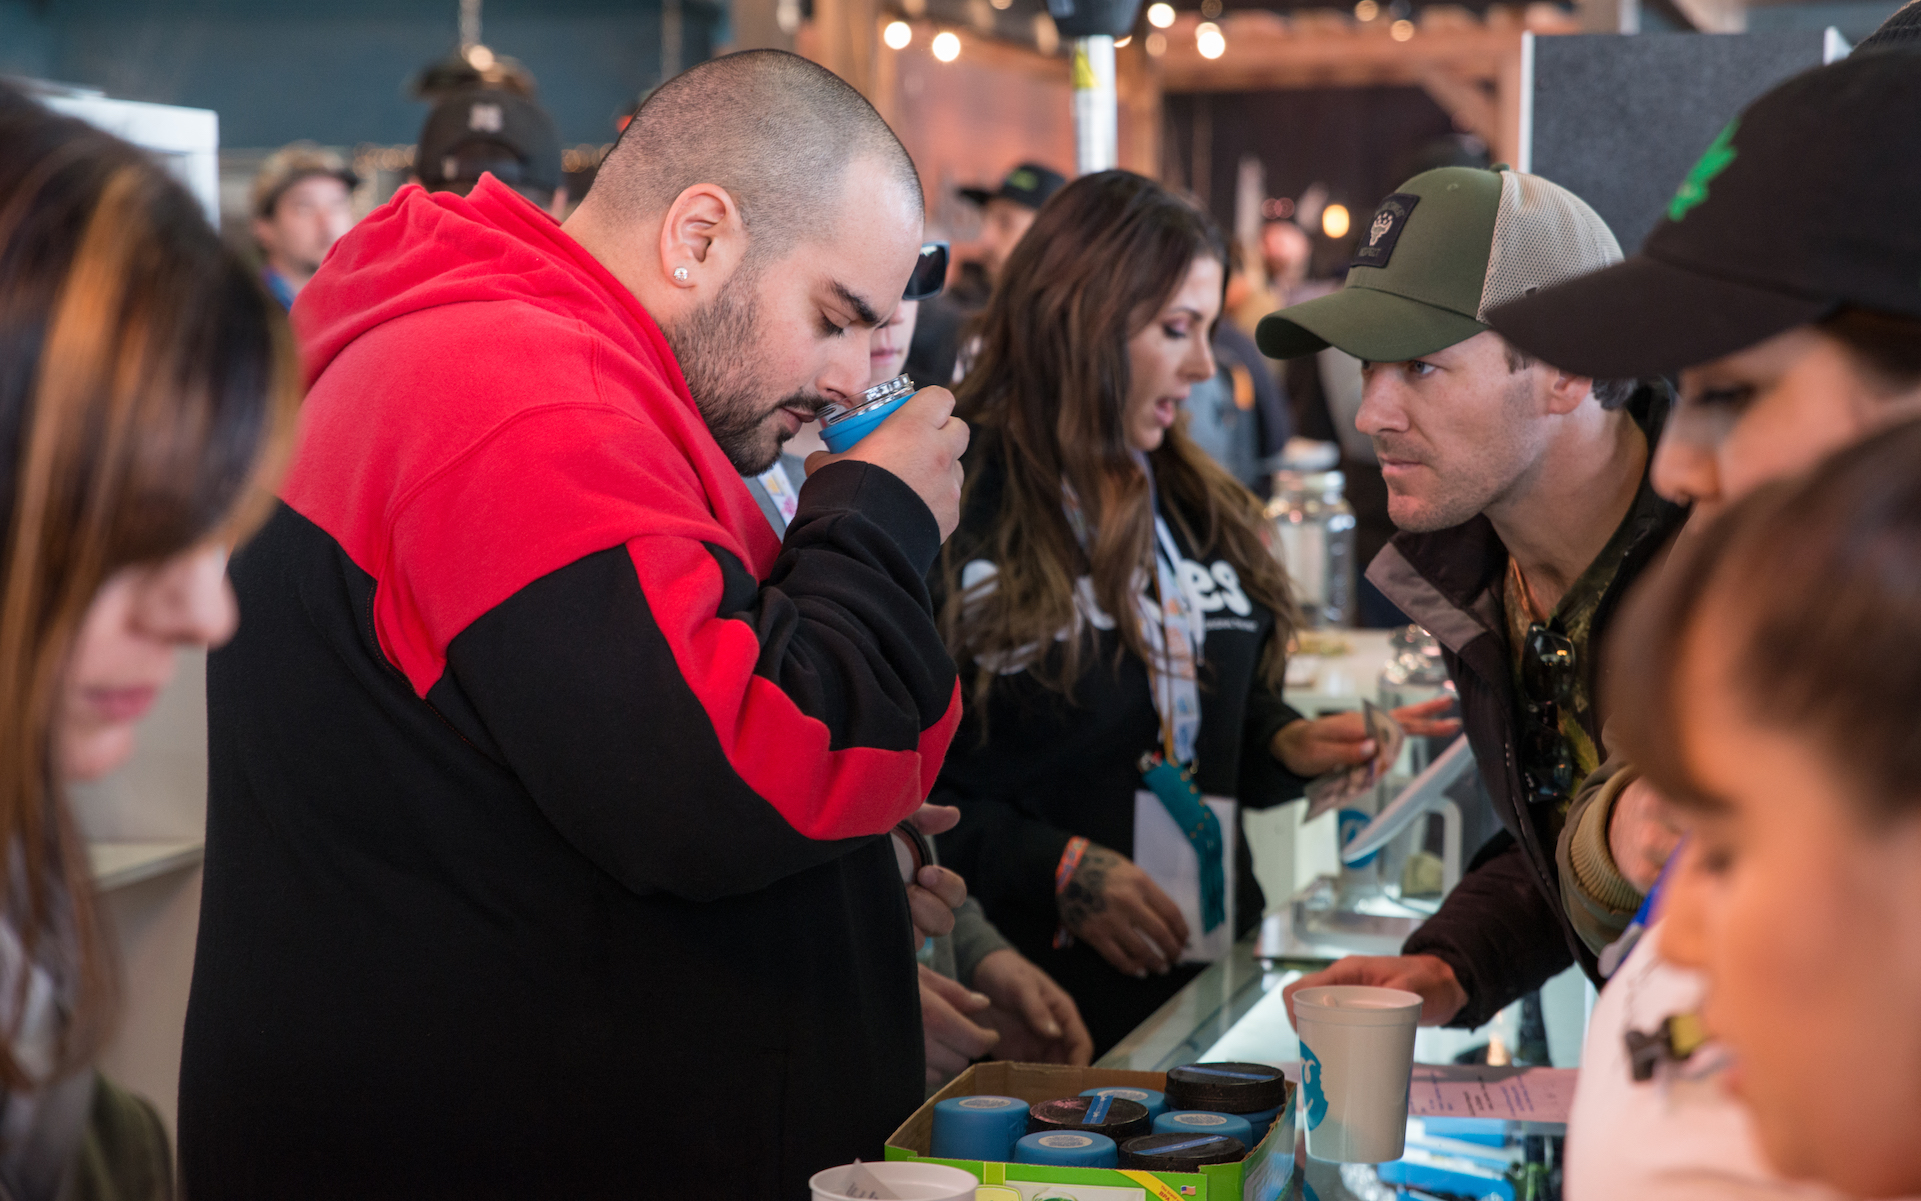 (Hundreds of vendors offer bargains on fresh outdoor cannabis flowers and seeds. Above, cannabis mogul Berner inspects the wares. (Courtesy Emerald Cup))